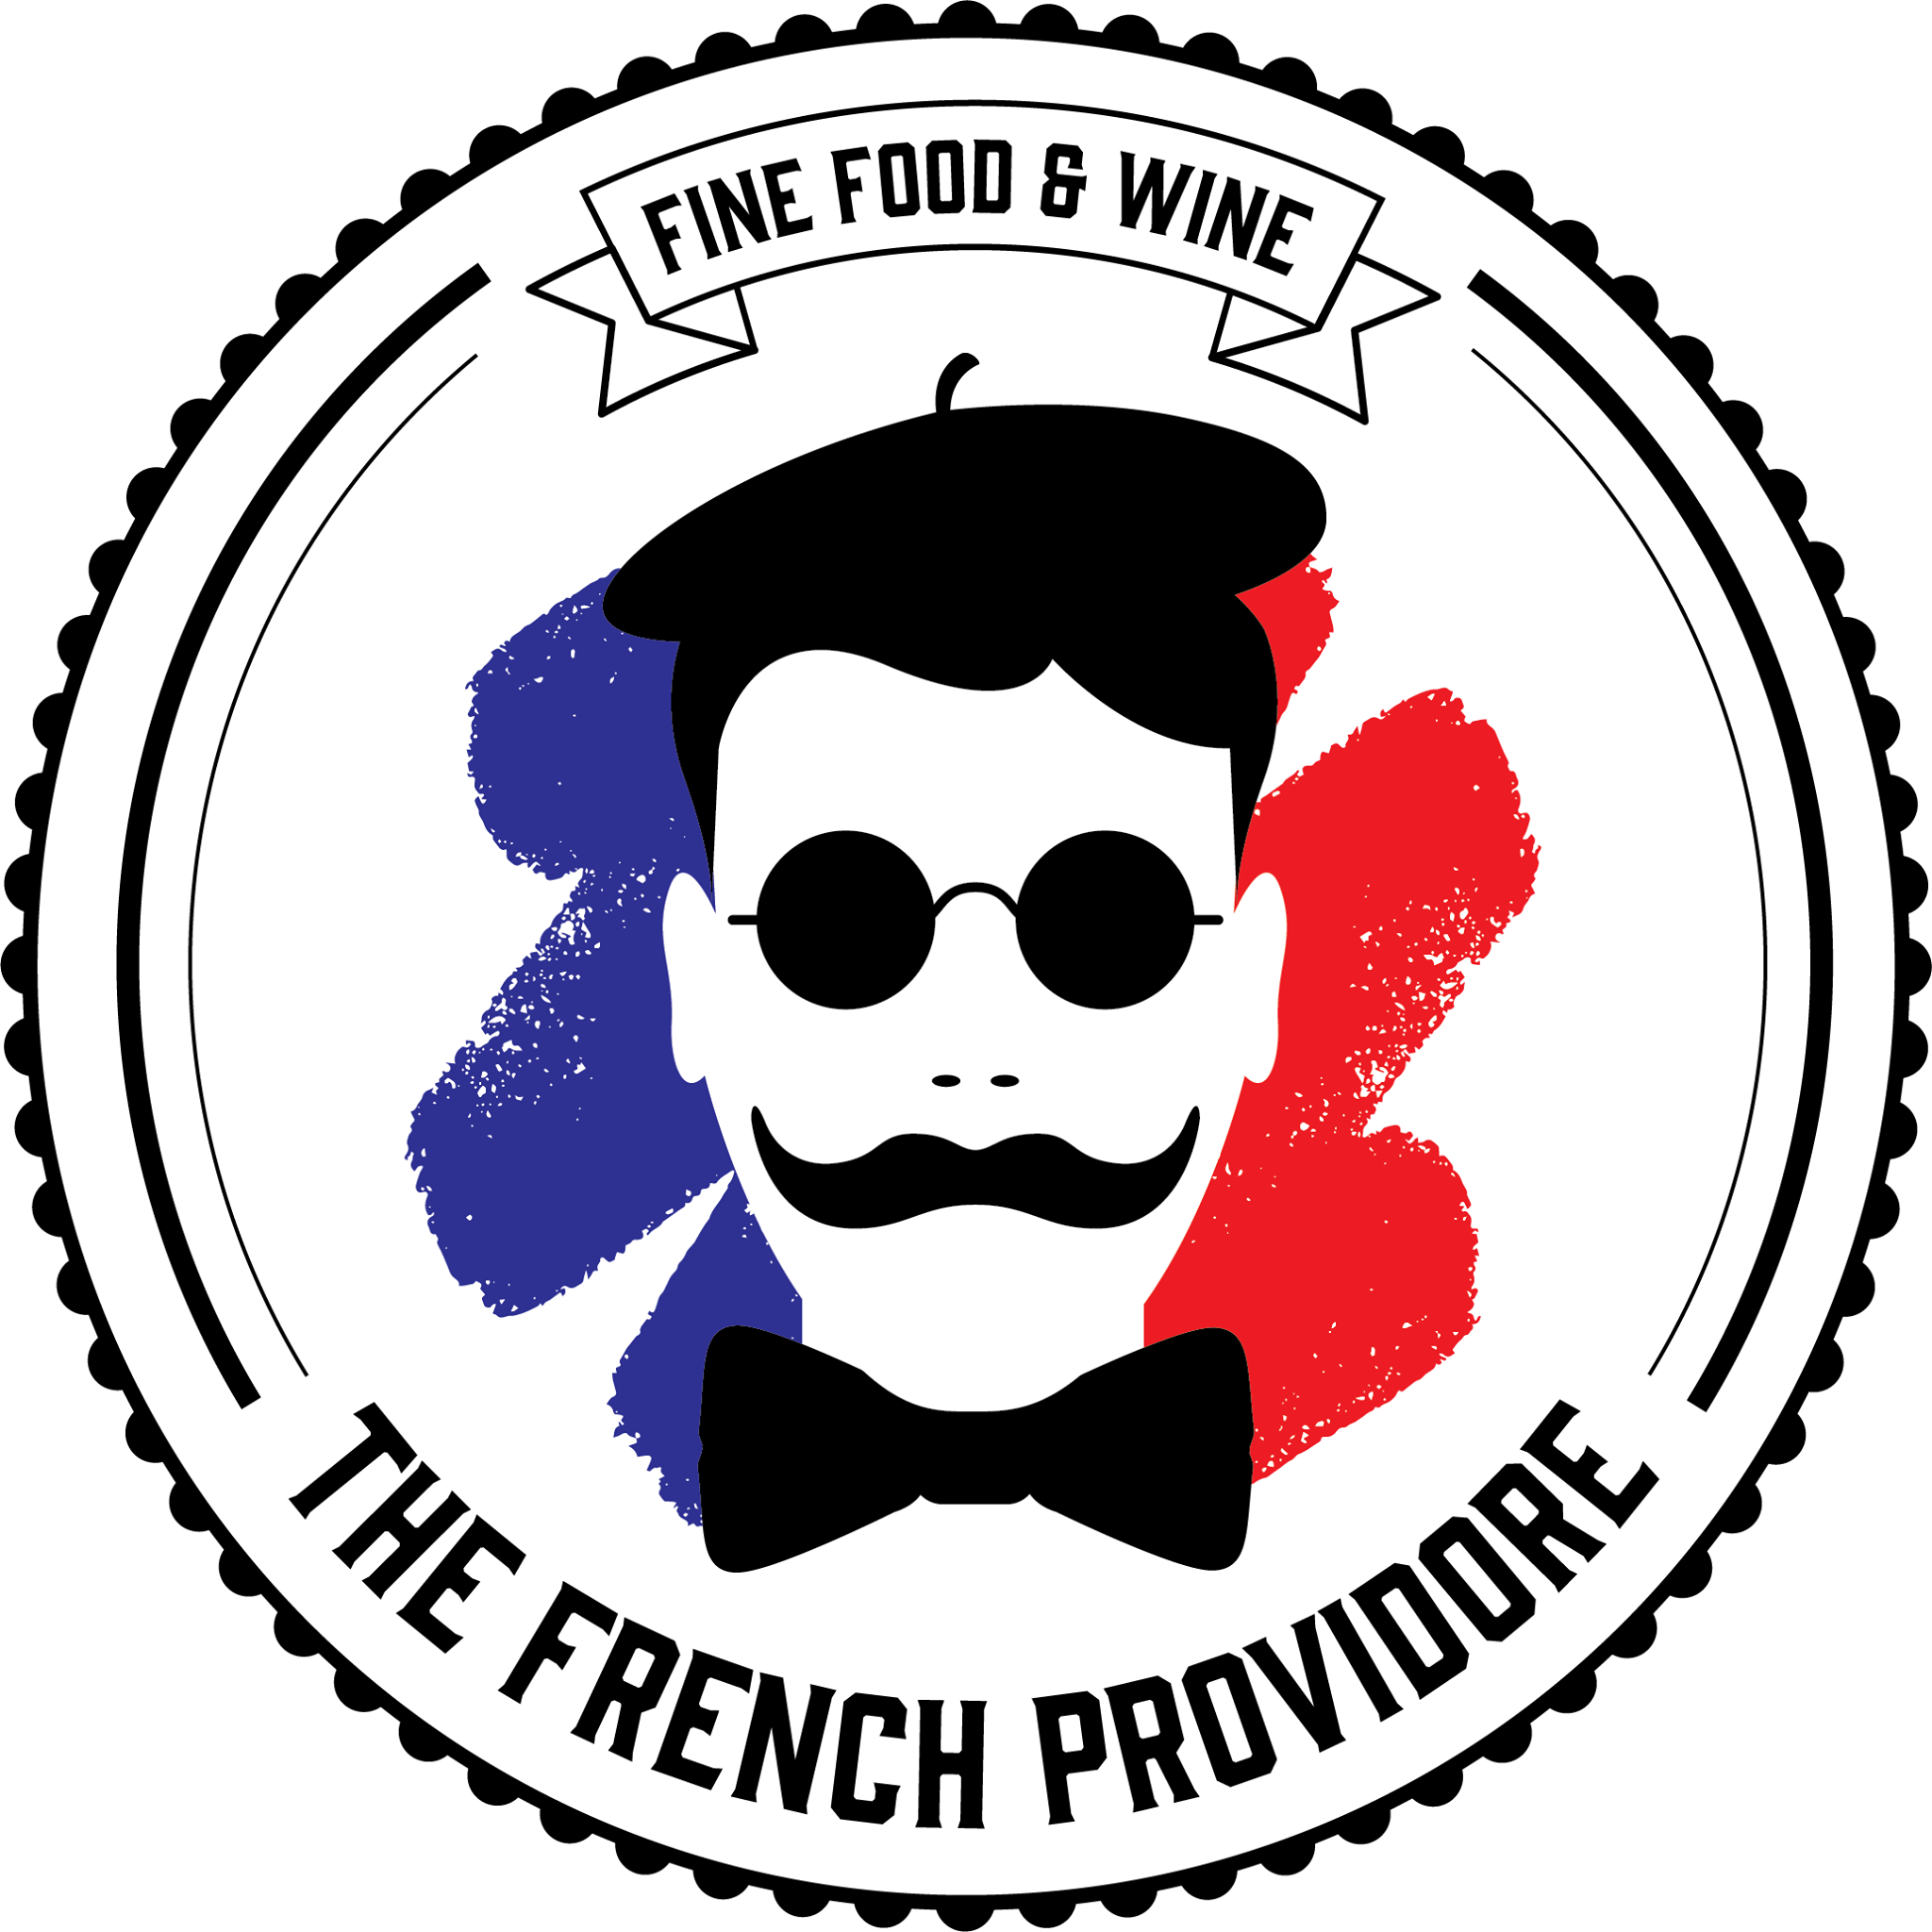 The French Providore Store